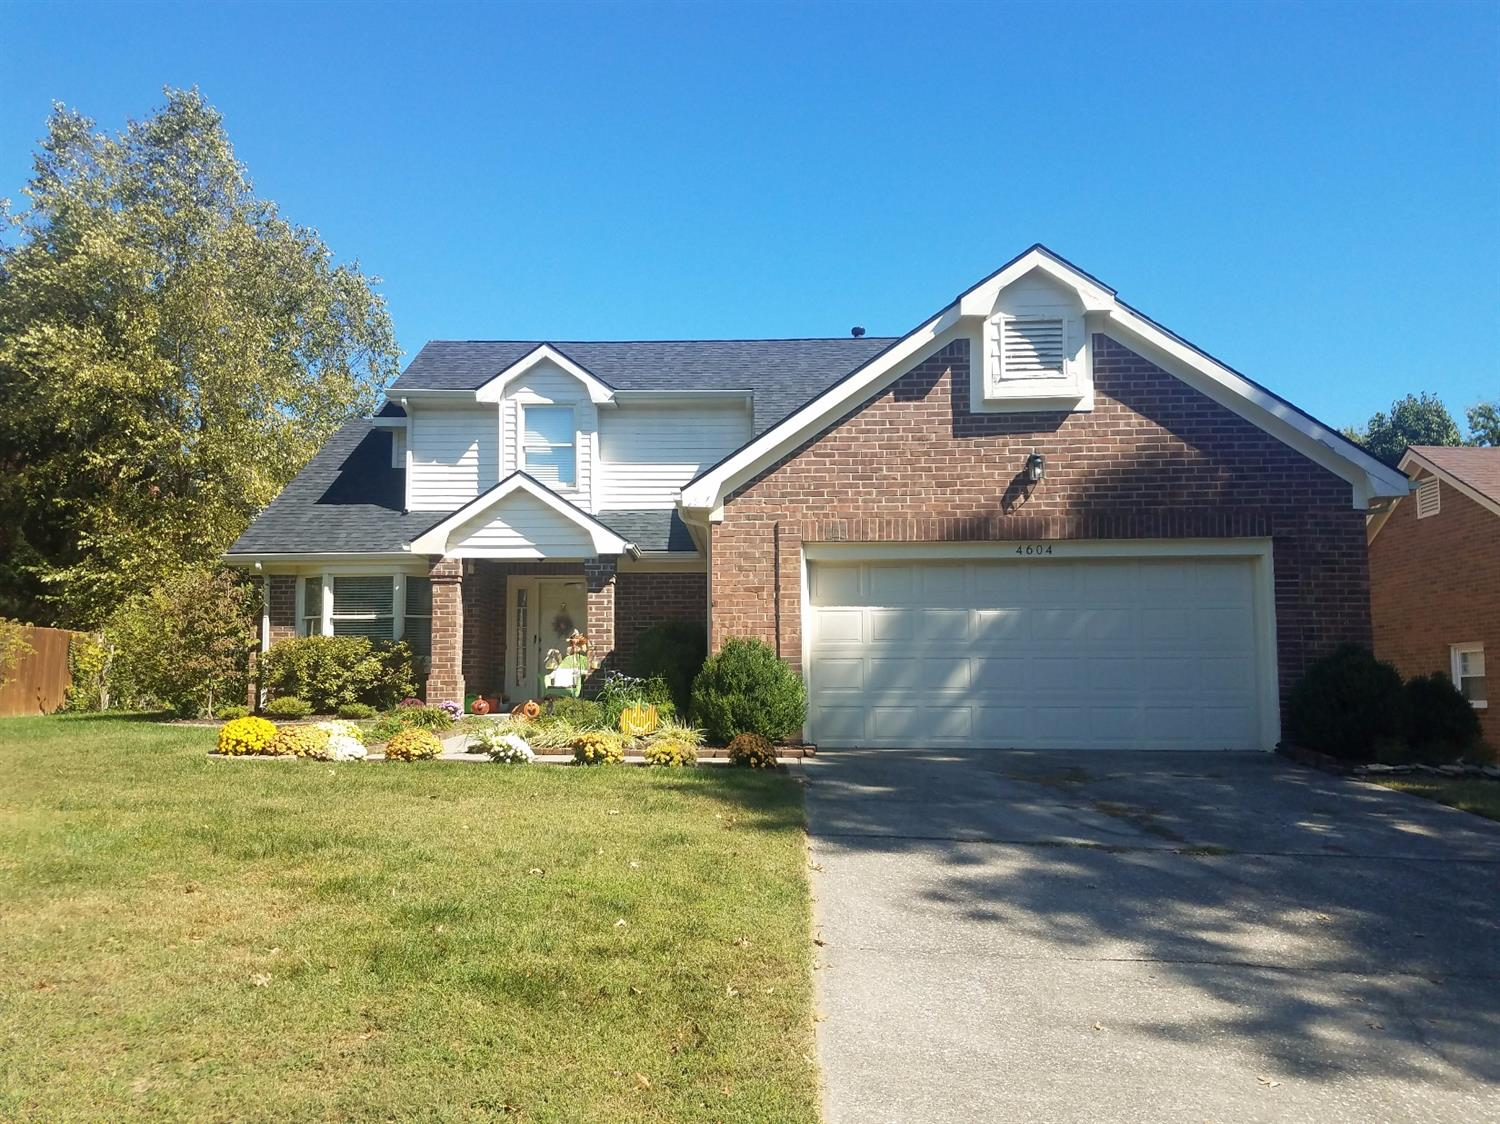 Location,%20Features,%20Great%20price!%20This%20home%20has%20it%20all!%20Perfectly%20situated%20in%20popular%20Ashmoor%20near%20Veteran's%20Park.%20Established%20neighborhood%20with%20large%20mature%20trees%20that%20line%20the%20streets%20and%20provide%20shade.%20This%201.5%20story%20home%20has%20charm%20and%20character.%20Fantastic%20curb%20appeal,%20beautiful%20landscaping%20and%20a%20nice%20patio.%201st%20Floor%20master%20with%20garden%20tub%20and%20walk-in%20closet.%20Separate%20utility%20room%20on%201st%20as%20well.%20Living%20room%20with%20woodburning%20fireplace,%20formal%20dining%20area%20and%20a%20quaint%20kitchen.%20Upstairs%20you%20will%20find%202%20more%20bedrooms%20and%20a%20full%20bath.%20New%20roof%202016.%20This%20lovely%20home%20truly%20has%20it%20all.%20Seller%20also%20offering%20a%20one-year%20home%20warranty%20with%20acceptable%20offer.%20Don't%20miss%20this%20one!%20Agents%20please%20see%20agent%20remarks.